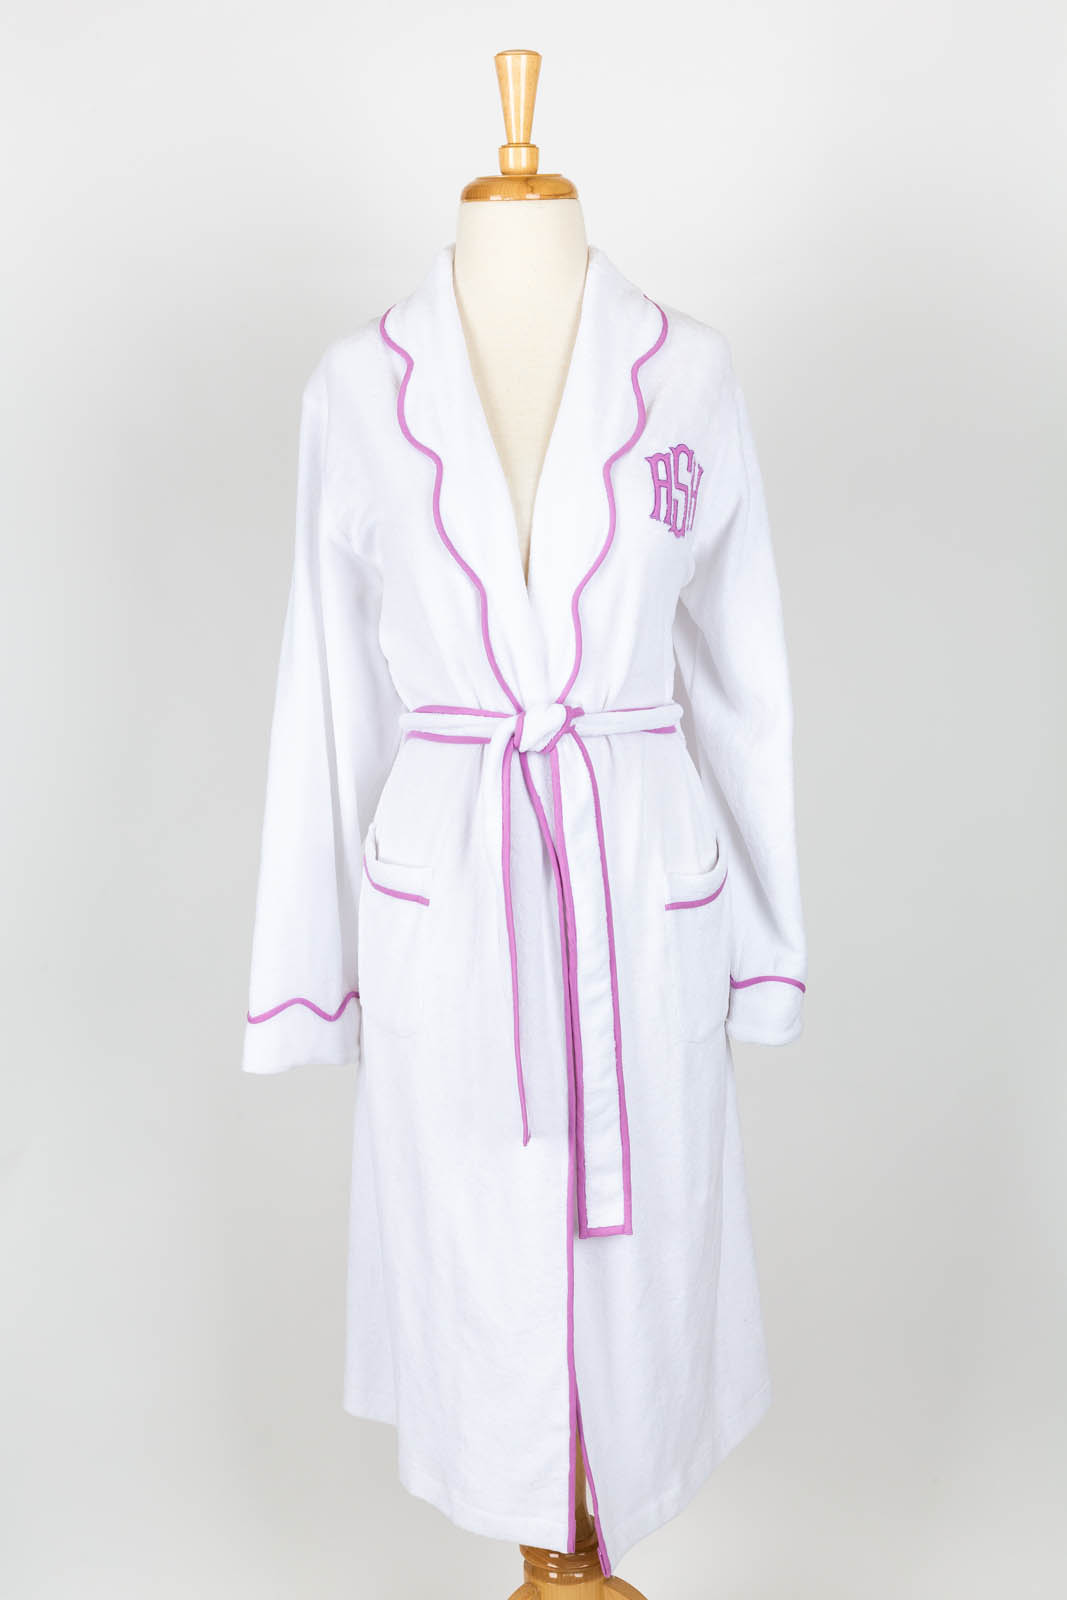 Scallop collar white terry jersey robe with Classic Applique (available unlined or terry jersey lined)